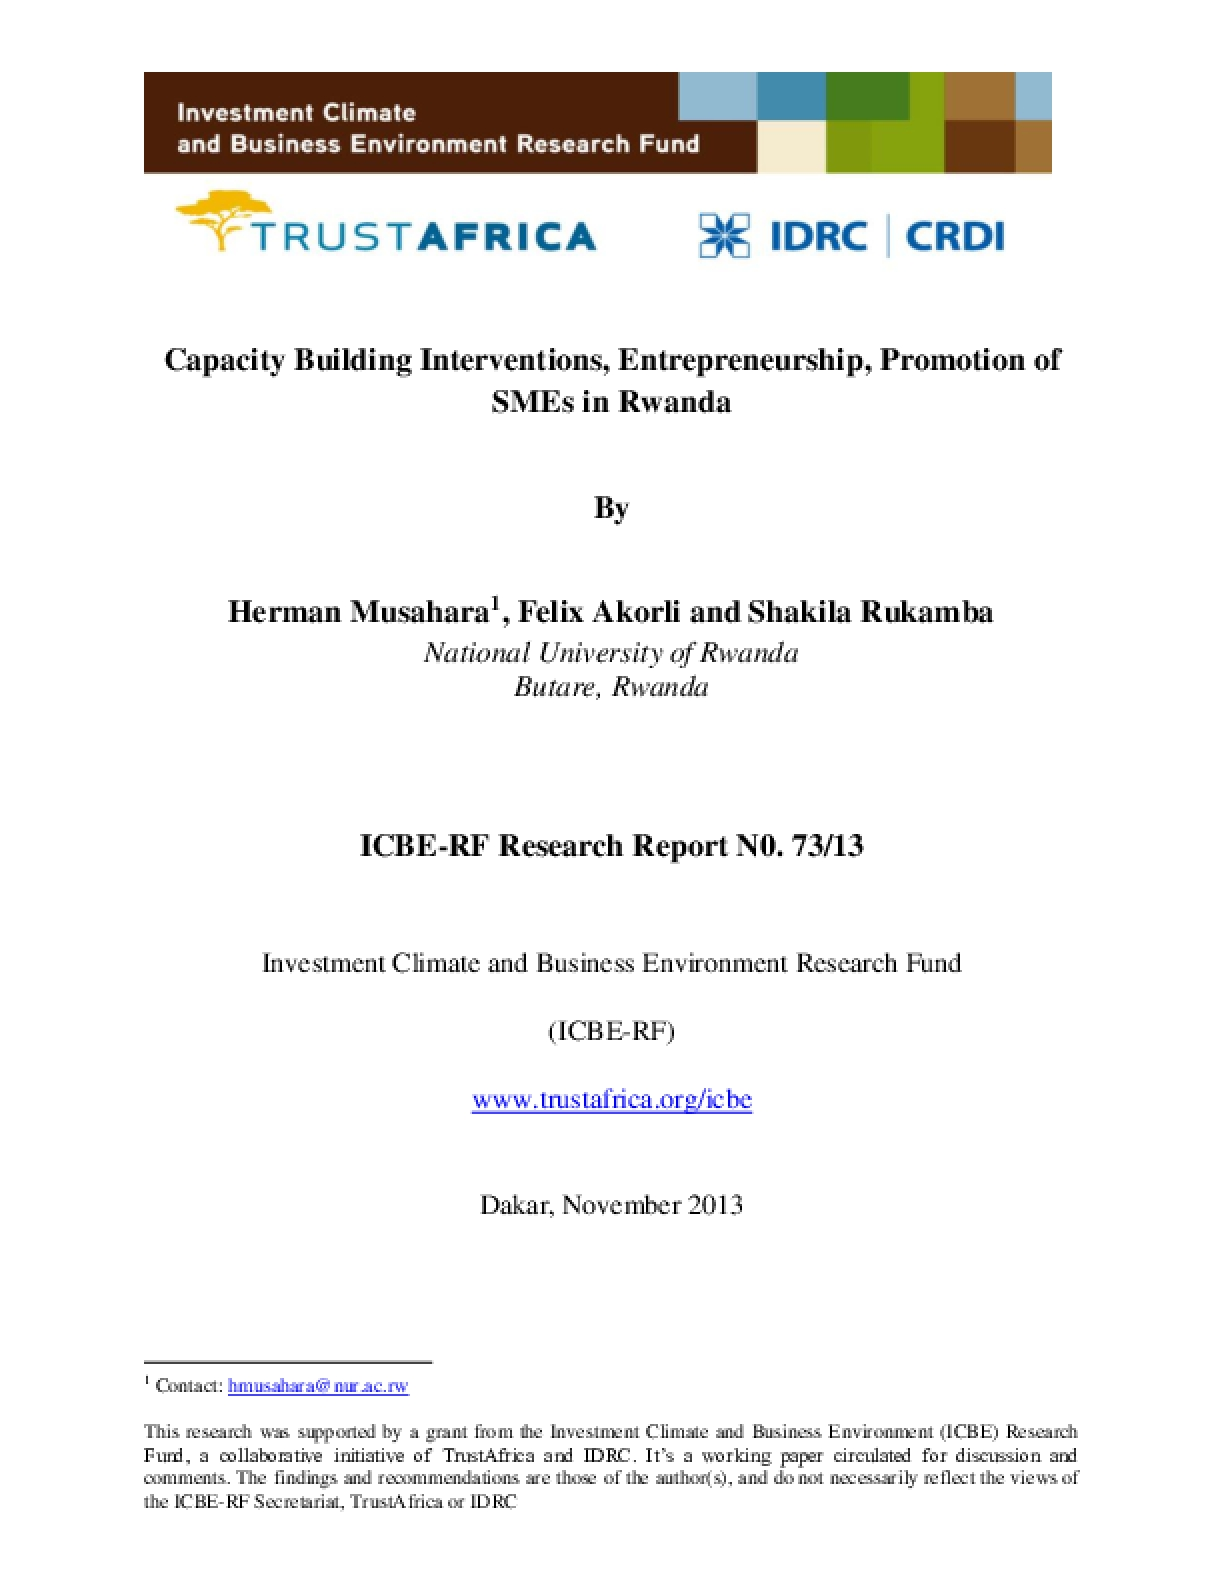 Capacity Building Interventions, Entrepreneurship, Promotion of SMEs in Rwanda